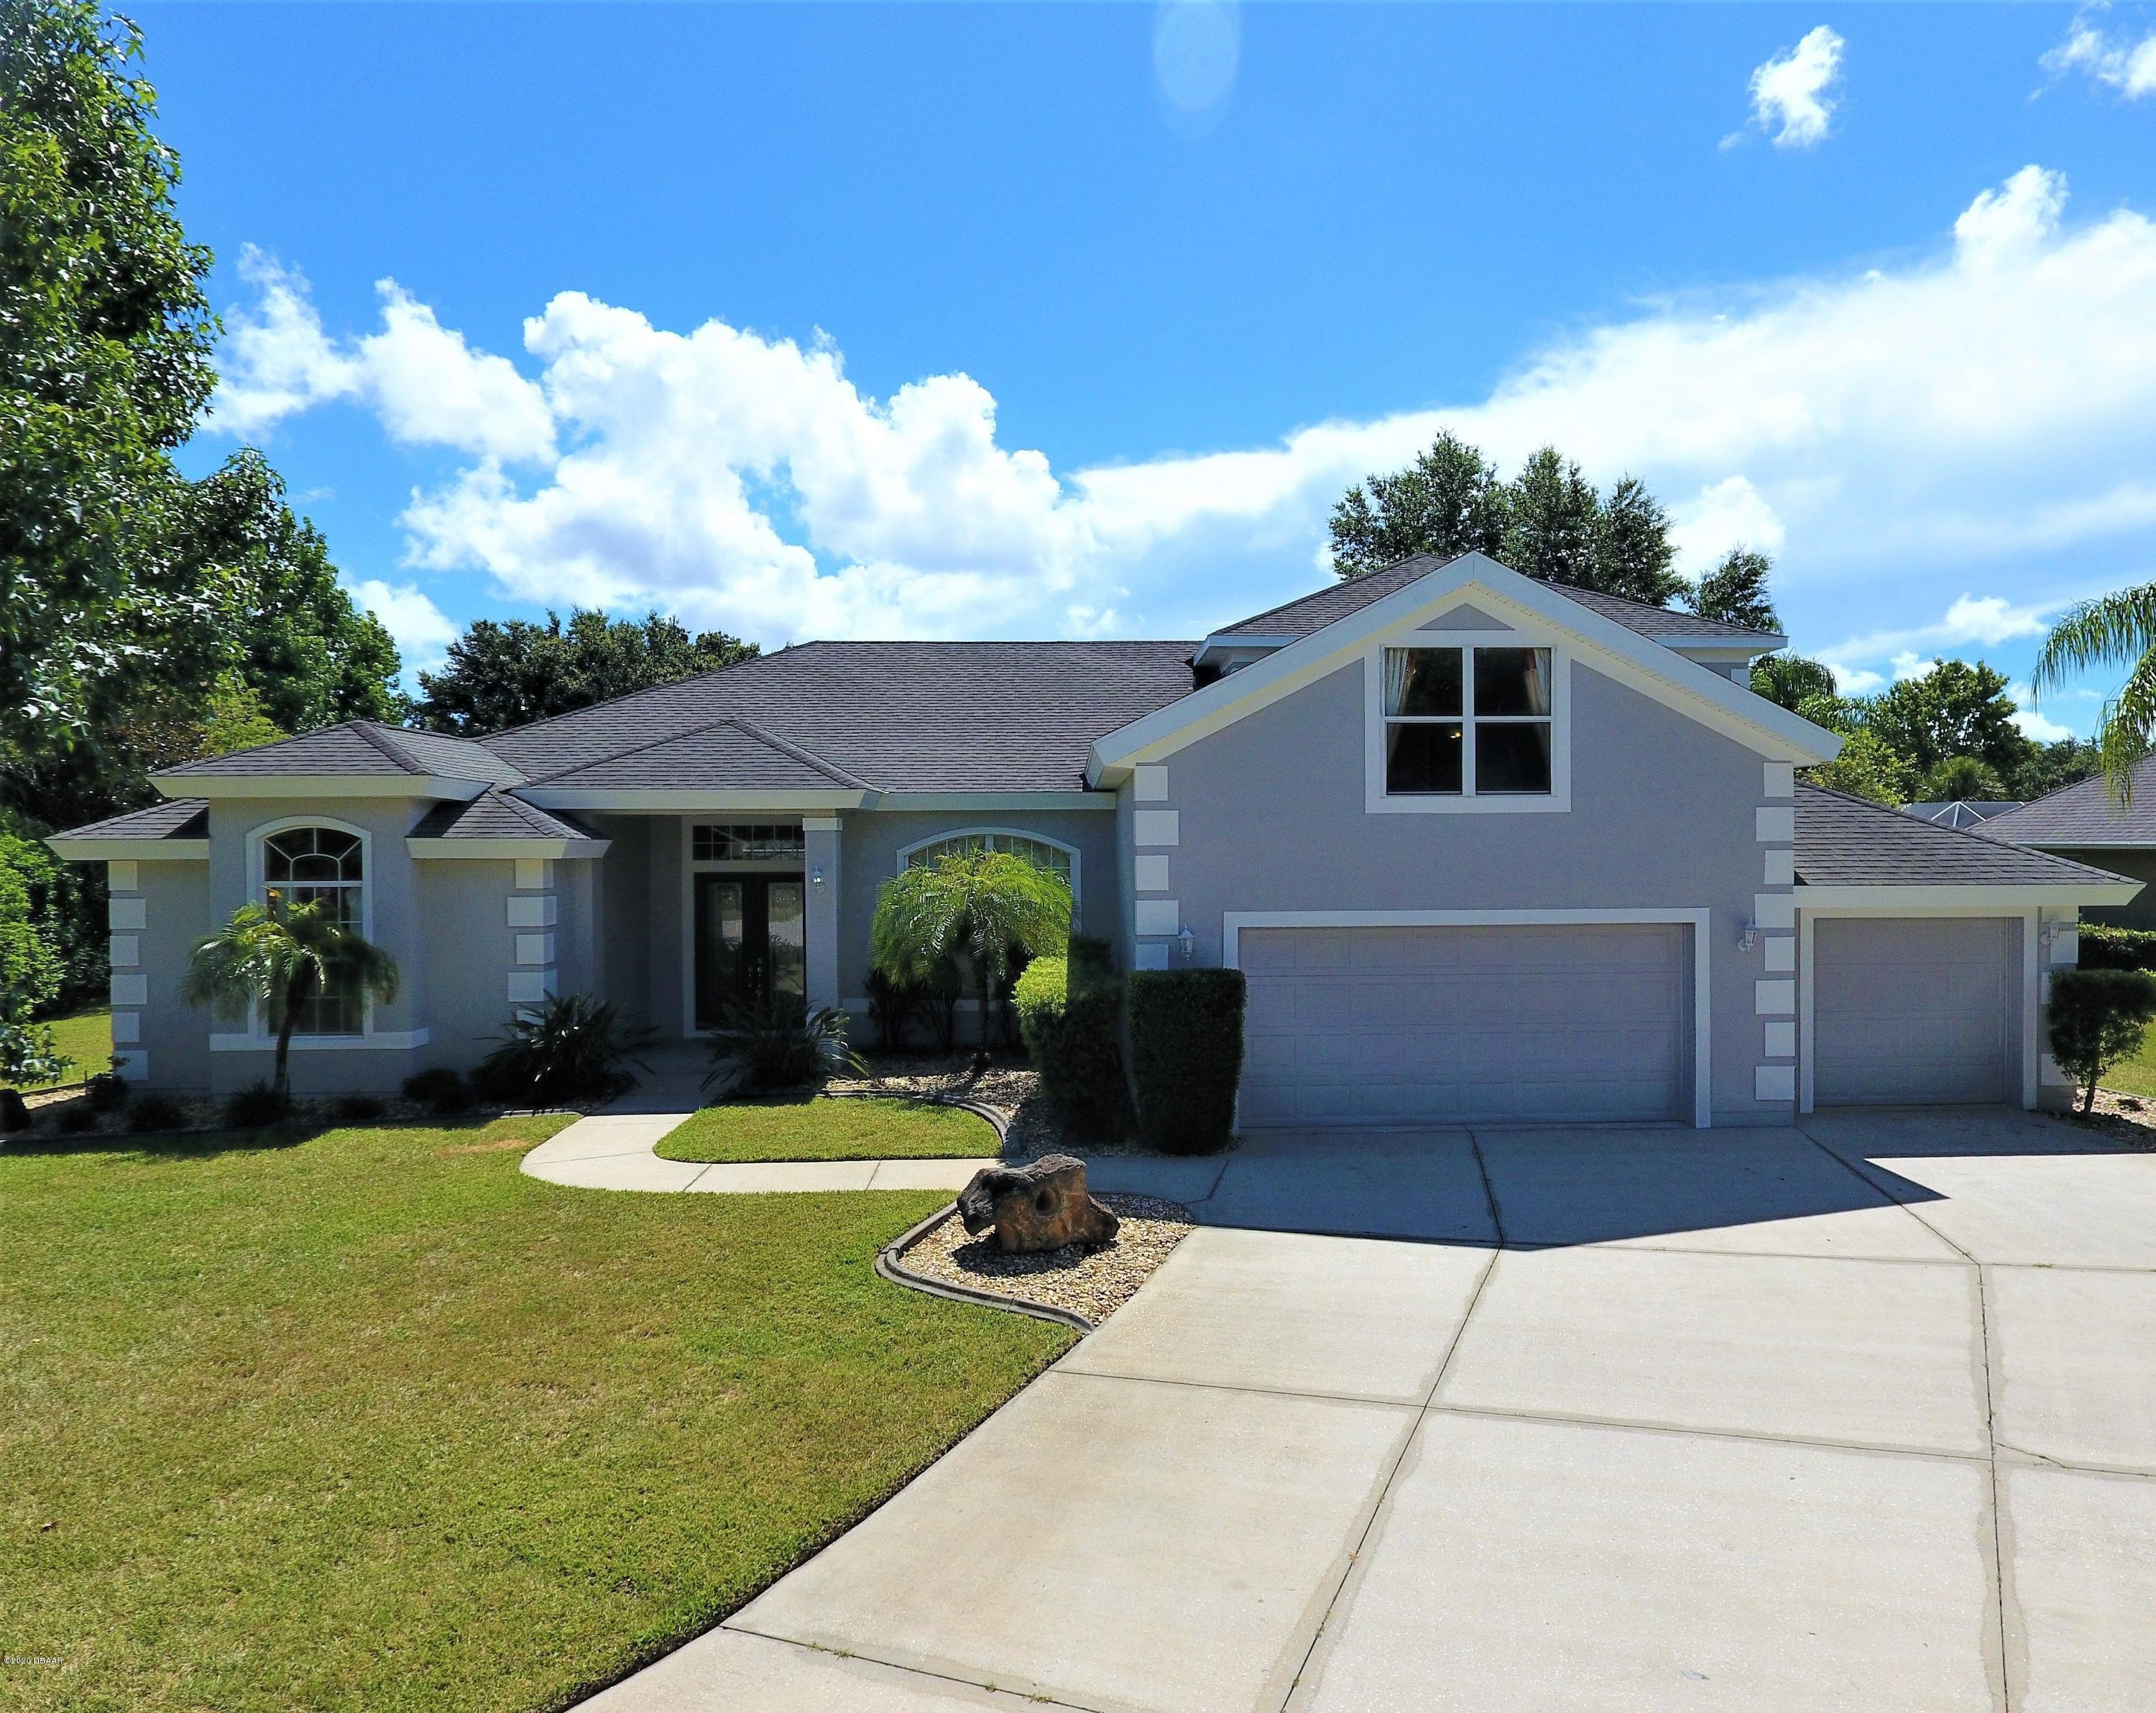 Listing Details for 31 Deep Woods Way, Ormond Beach, FL 32174